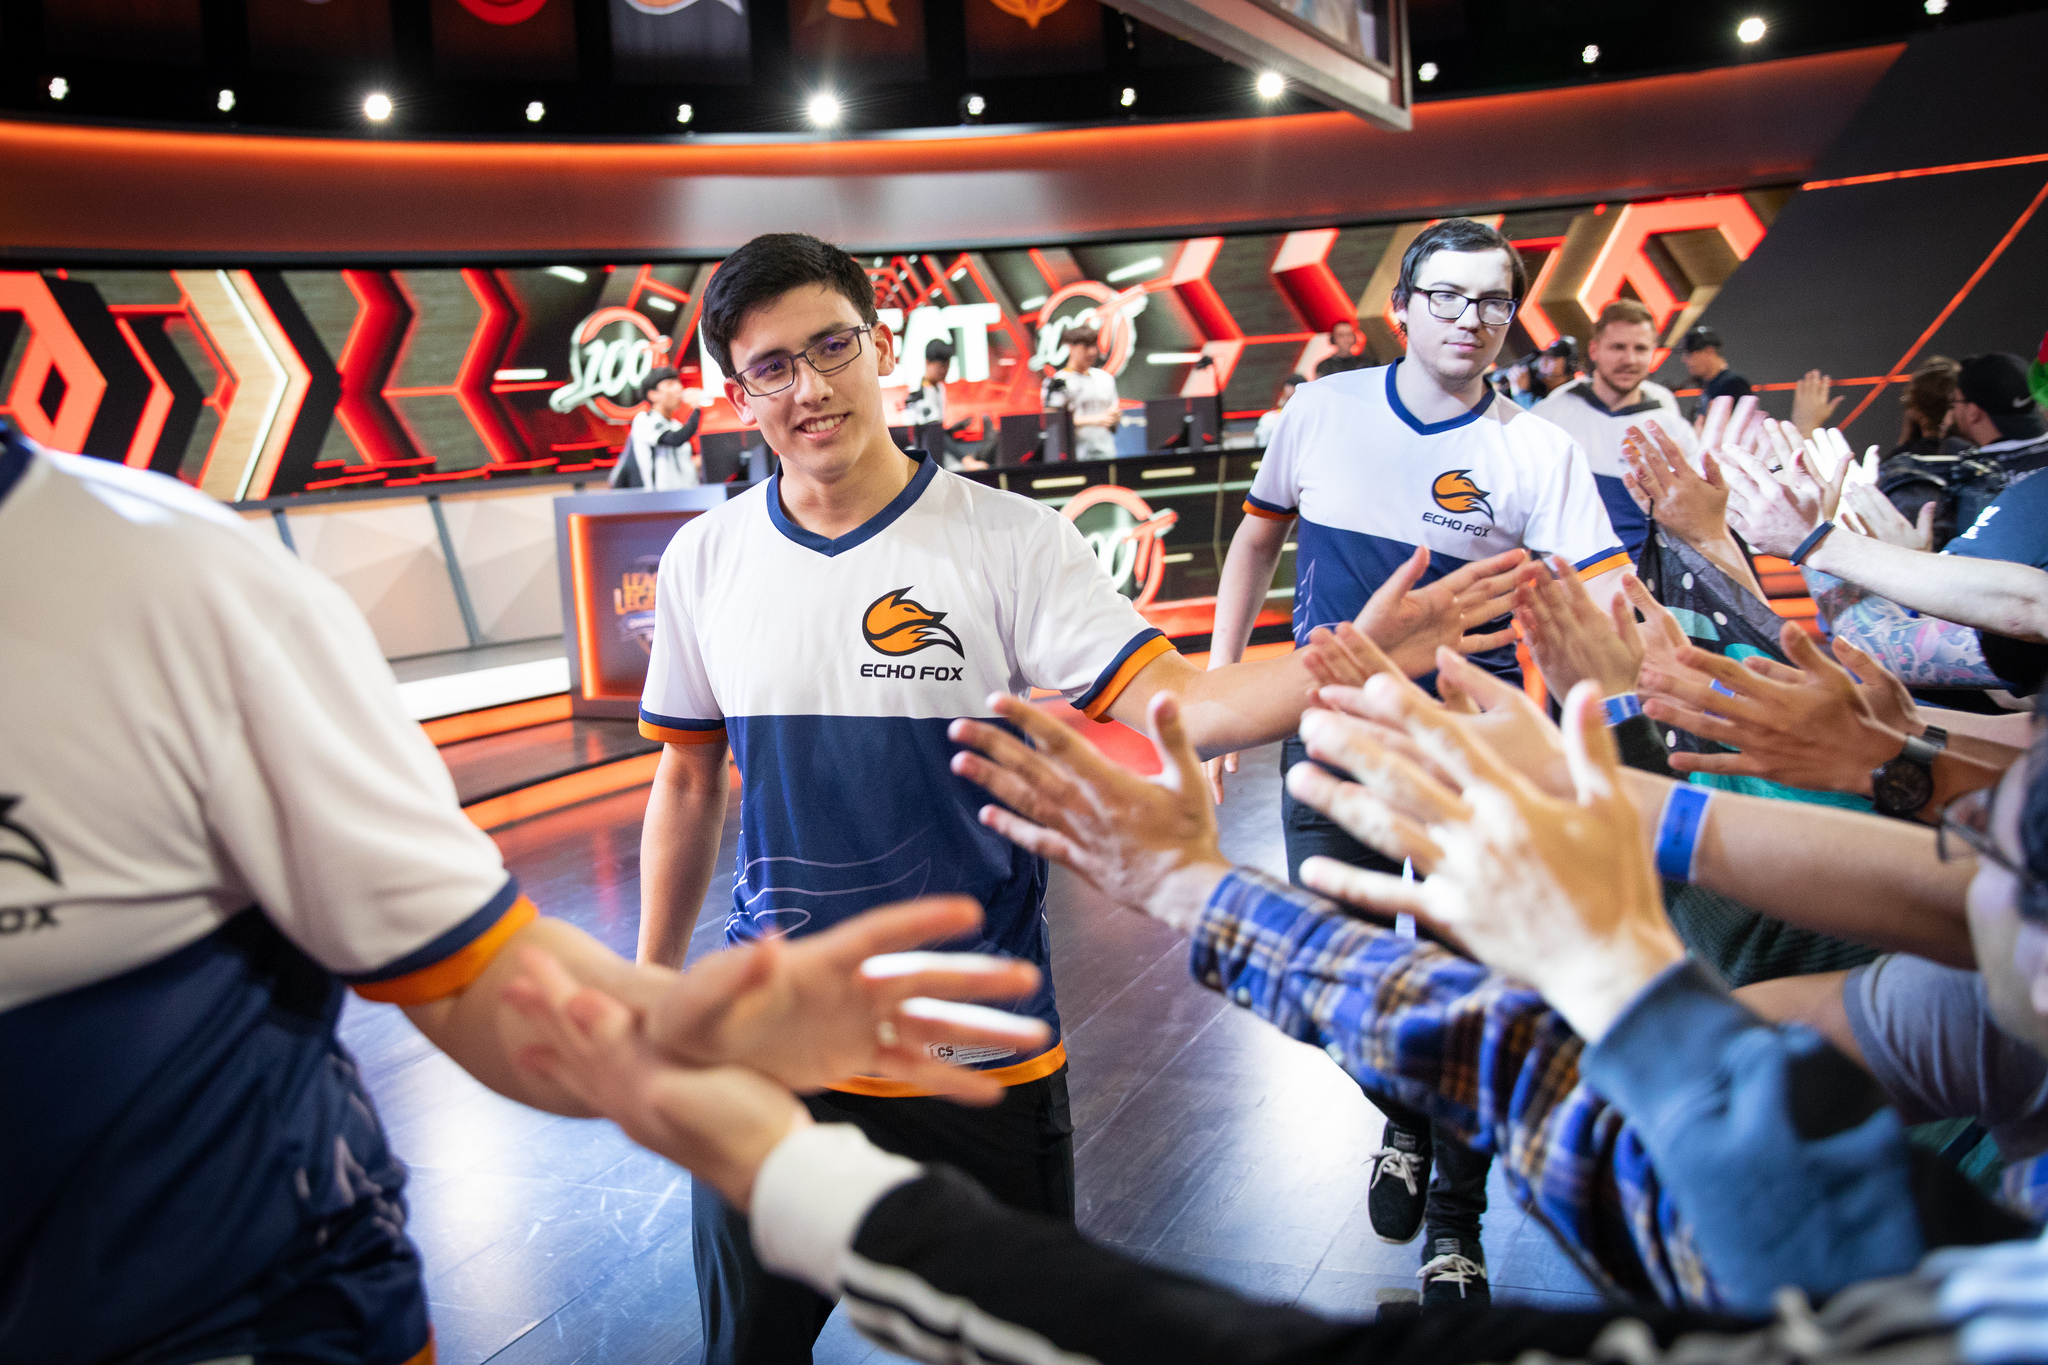 buy online 25832 a9603 Echo Fox clinch an LCS playoff spot after defeating CLG